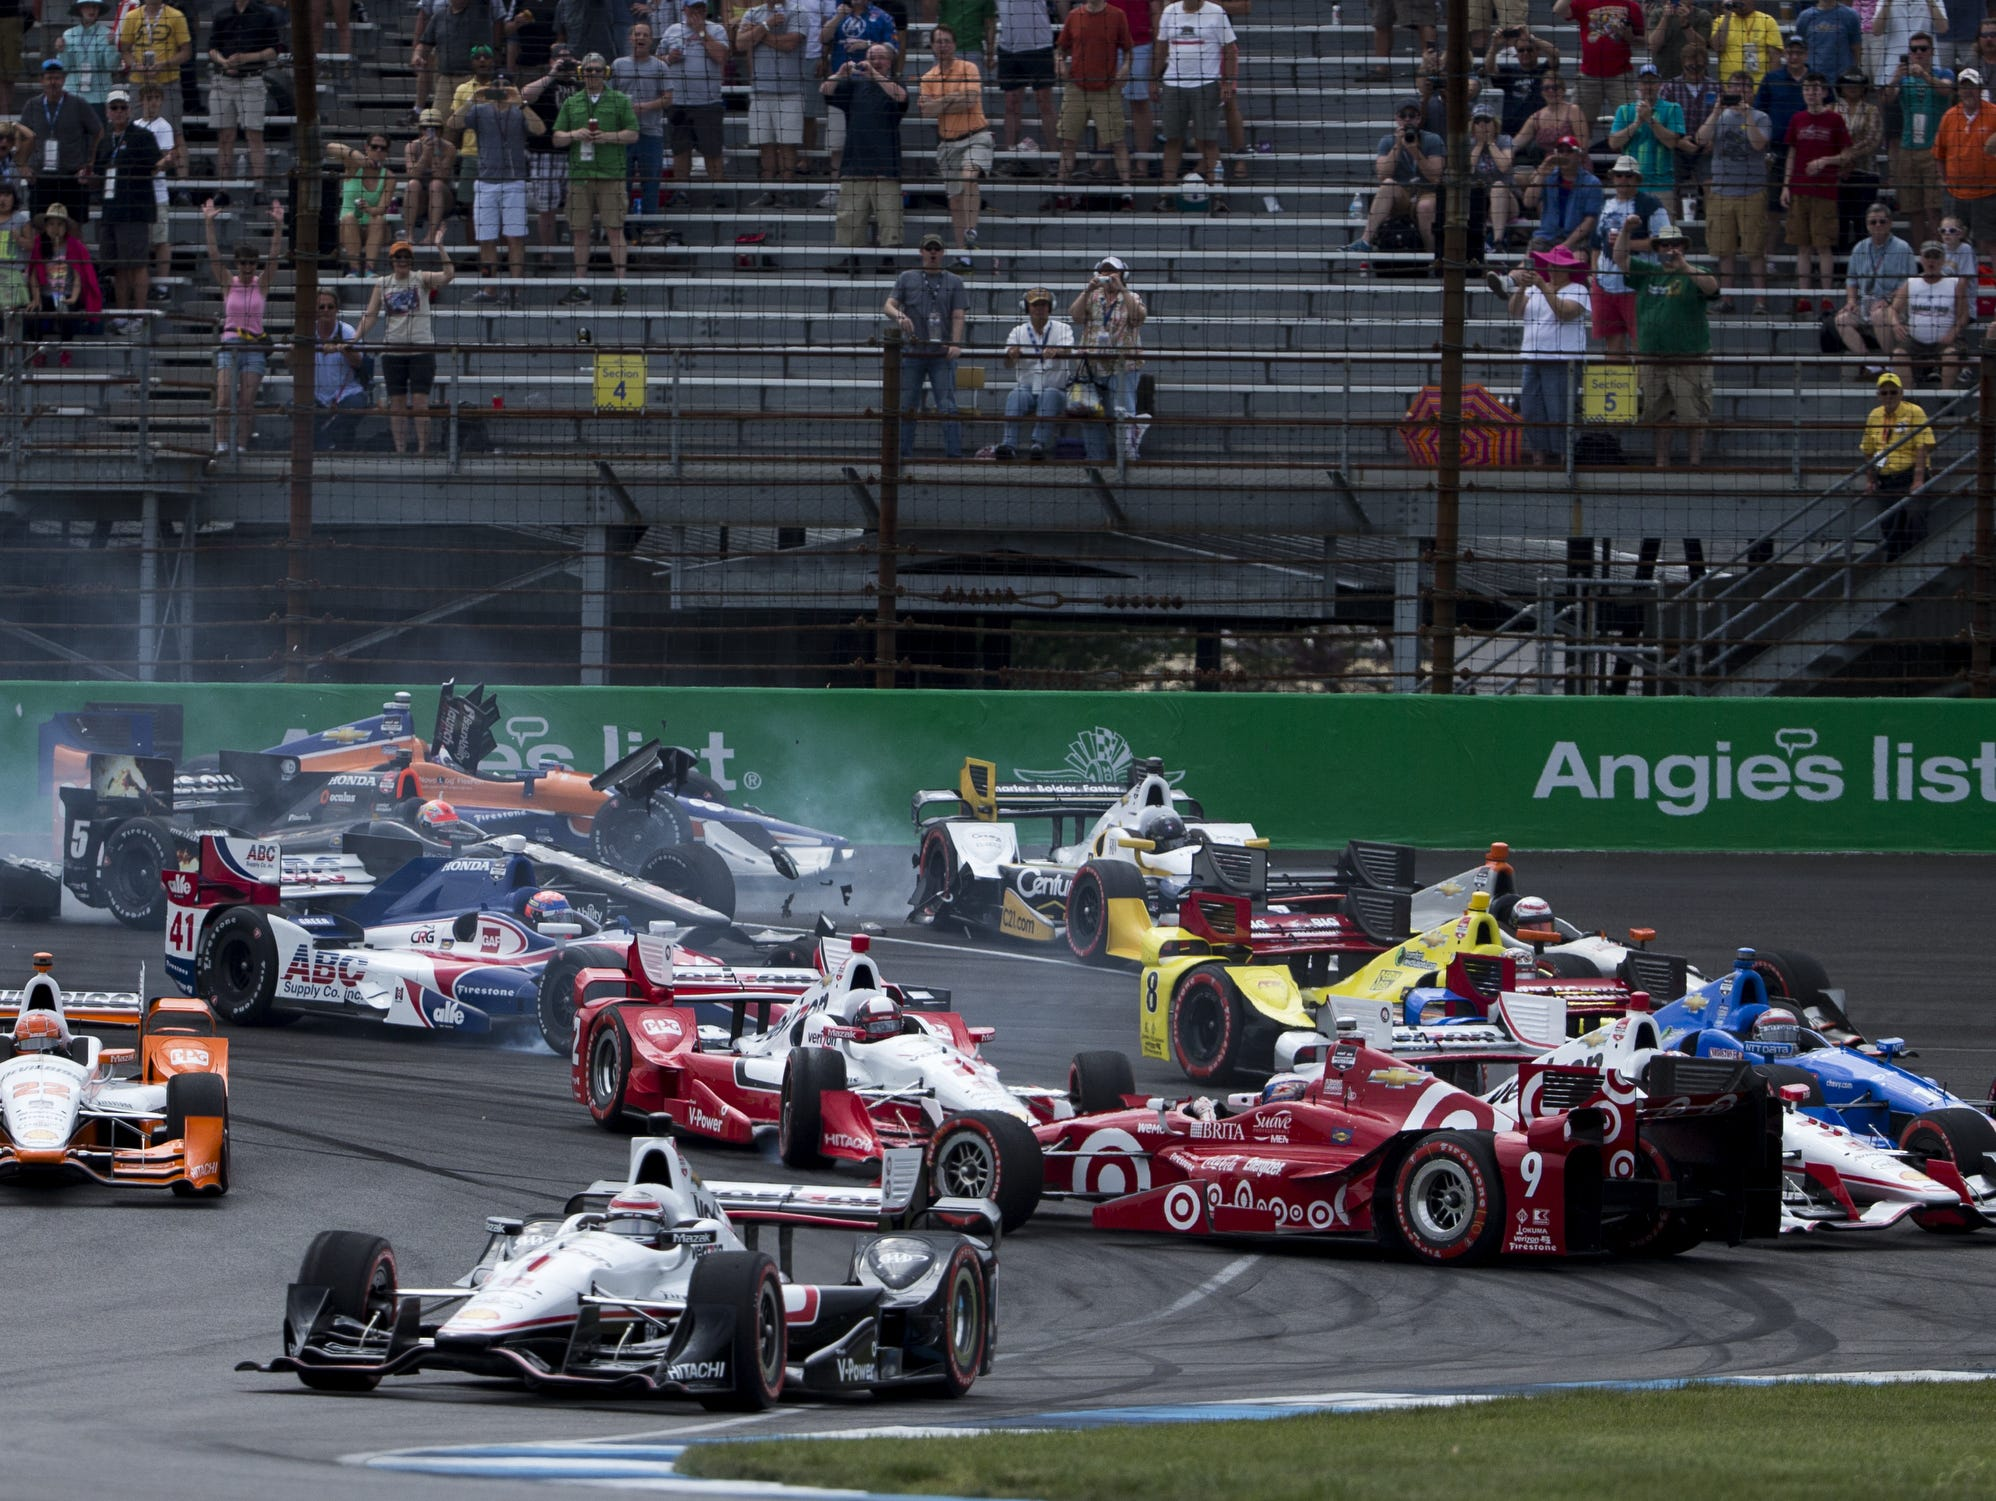 The first-lap contact between Helio Castroneves and Scott Dixon likely is being reviewed